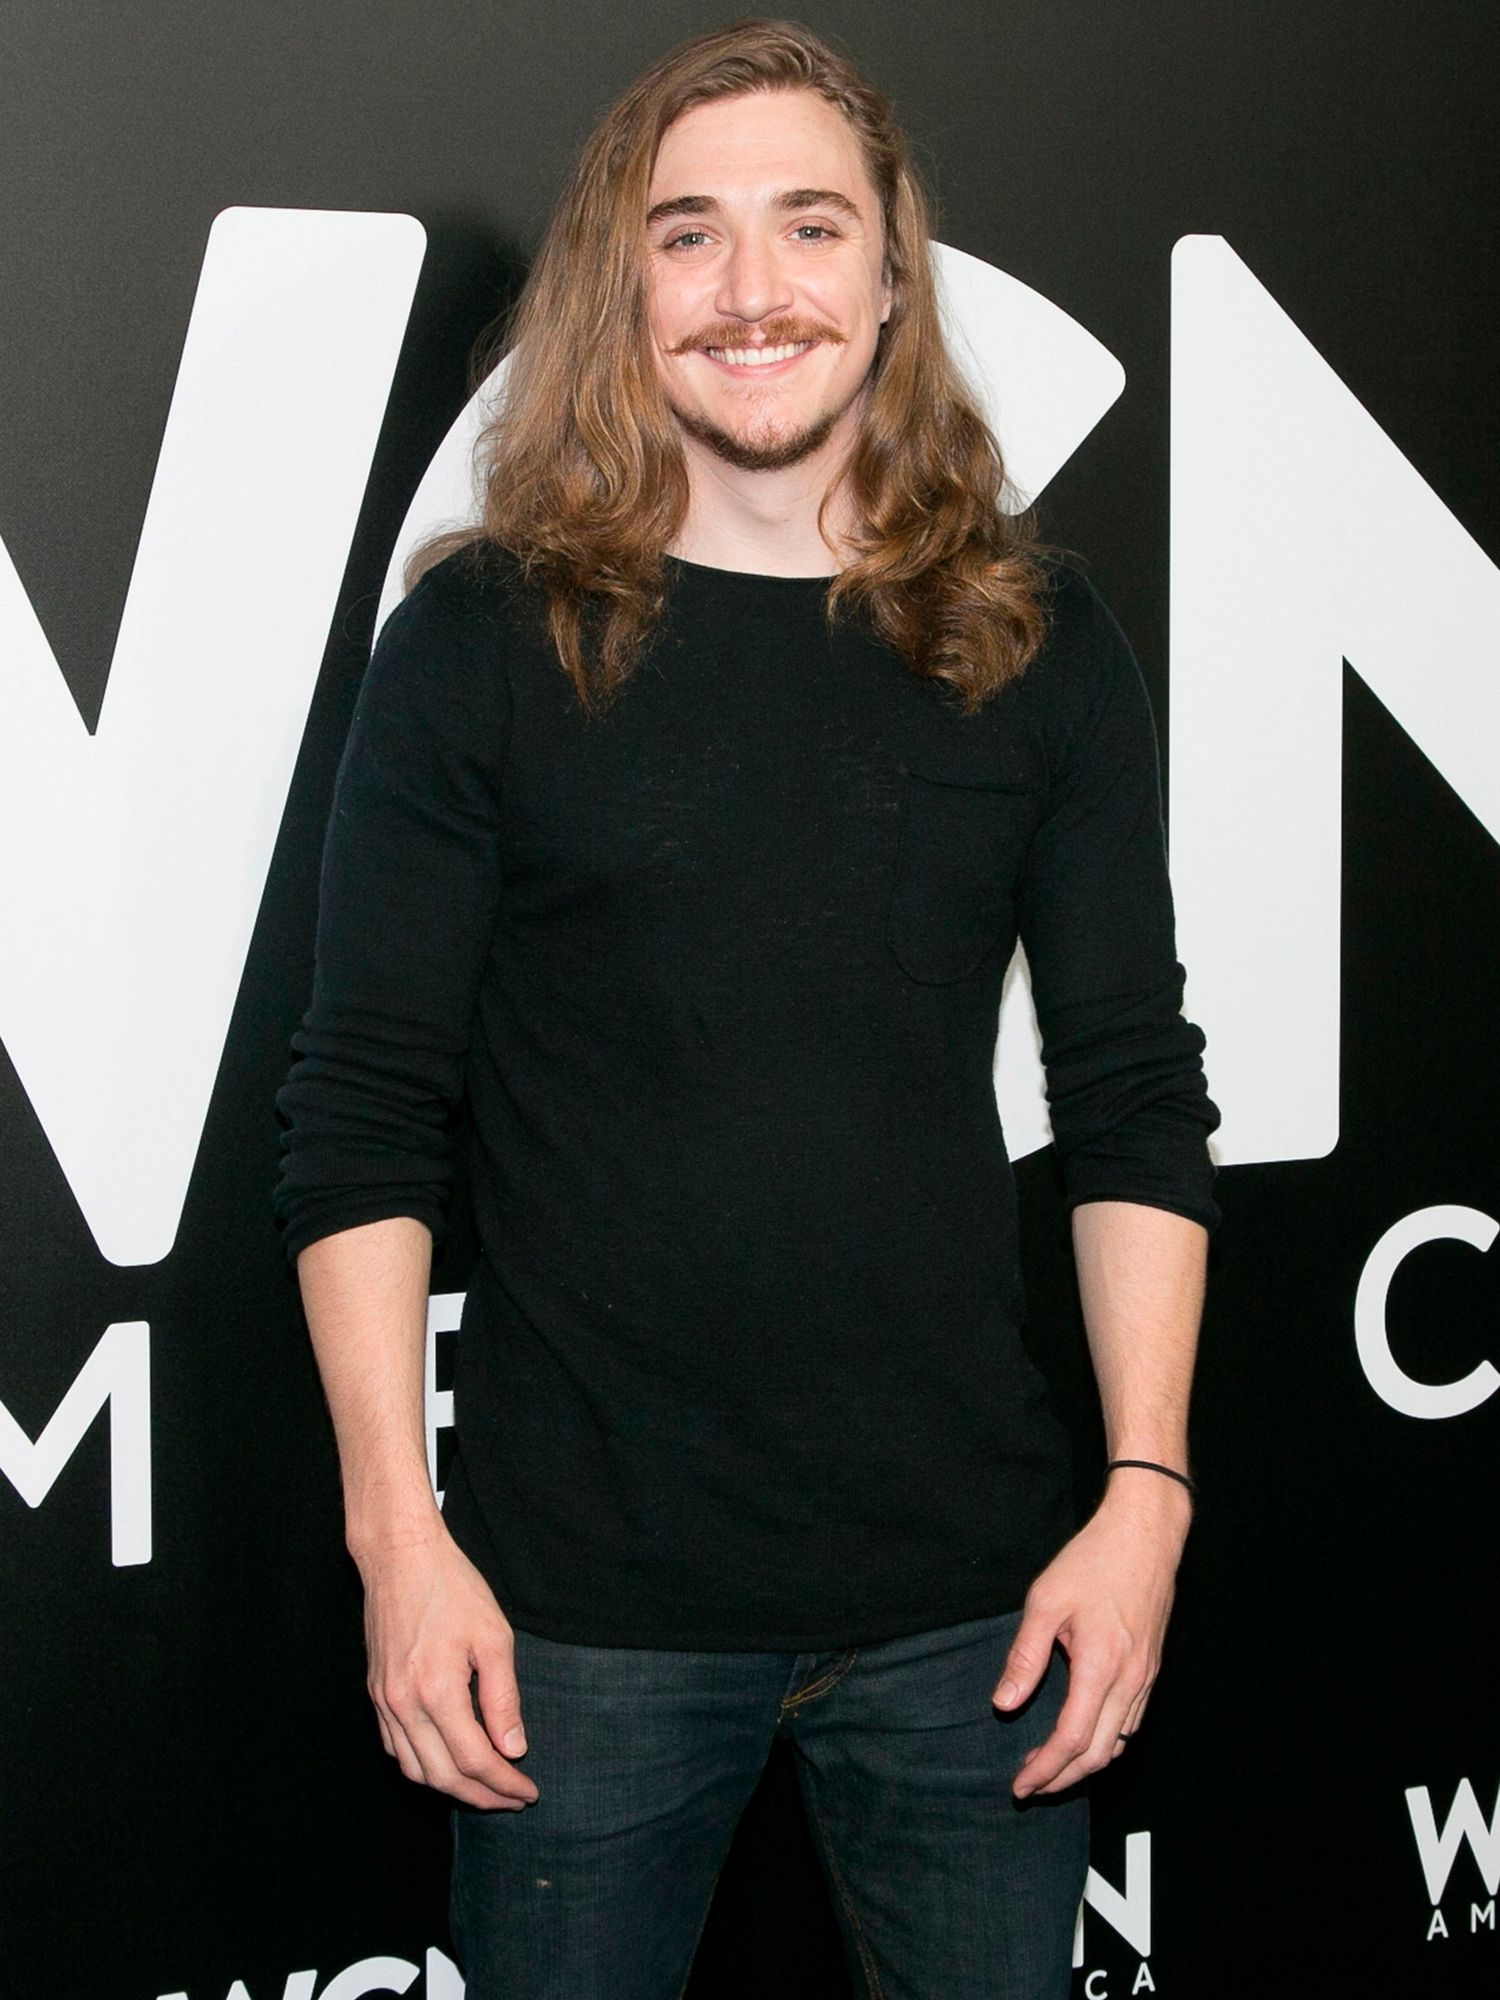 Actor Kyle Gallner in a black shirt and jeans.